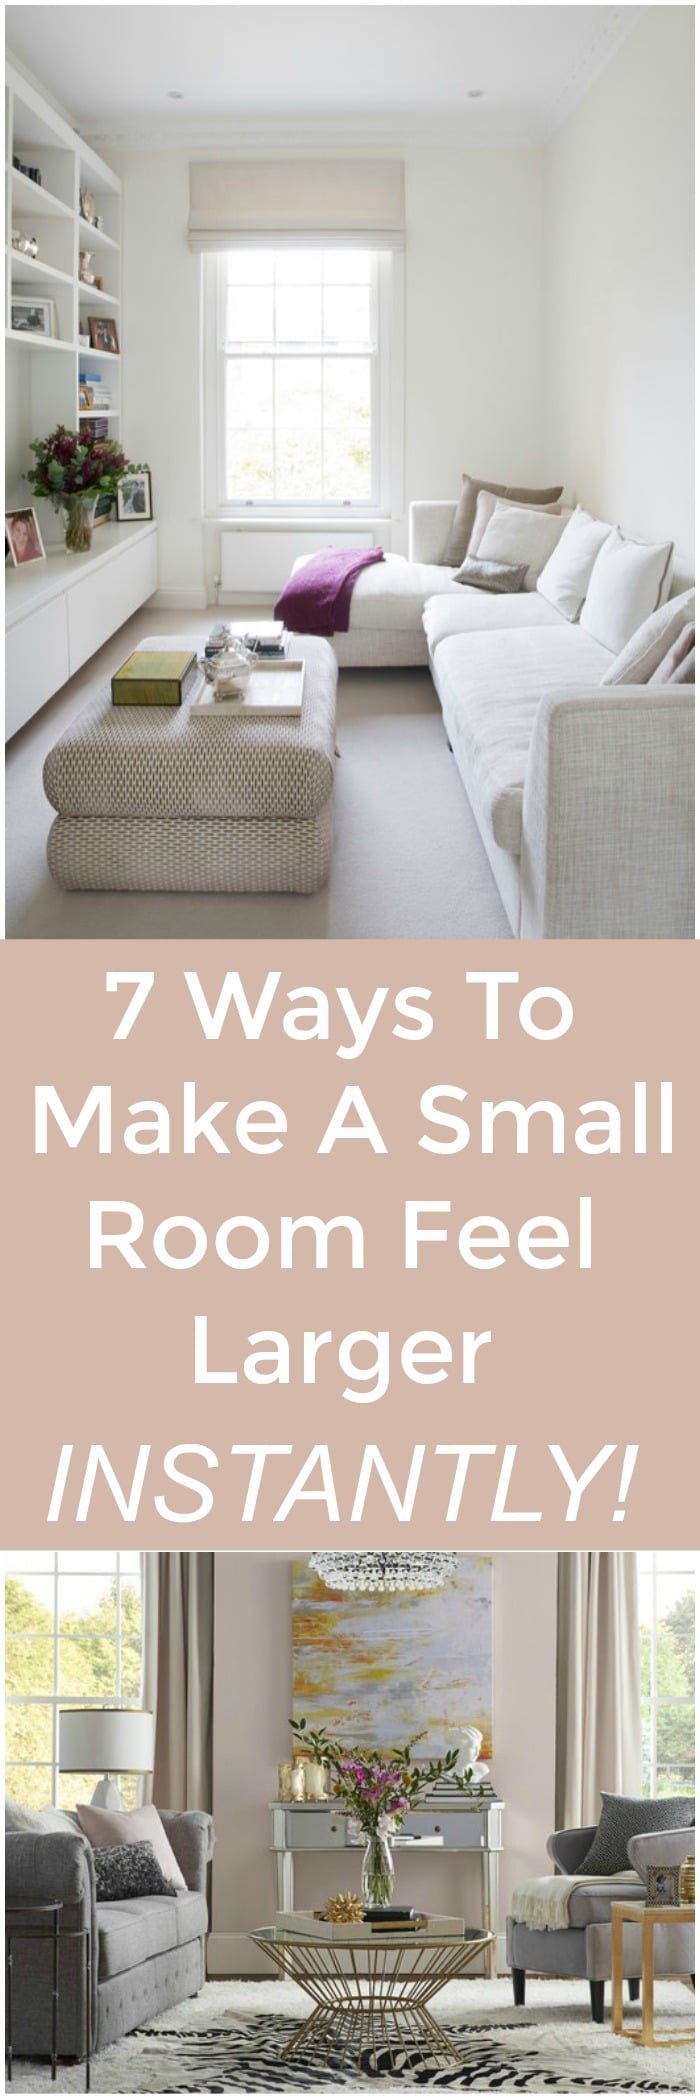 Decor tips: 7 ways to make a small room feel larger instantly!